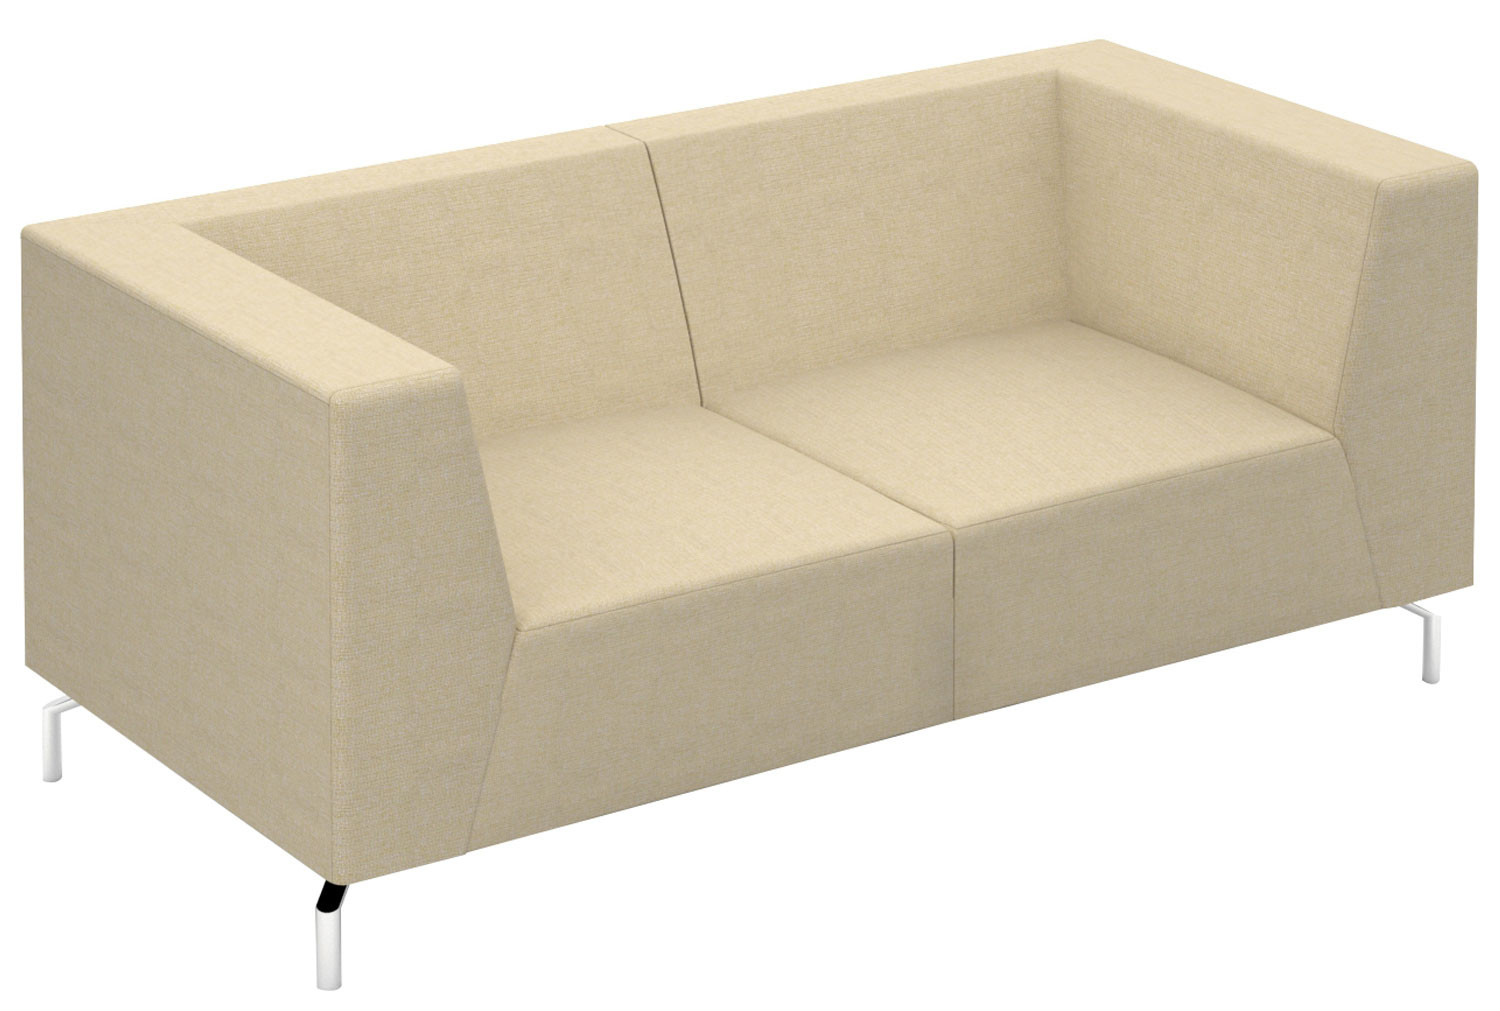 Plato Low Two Seater Sofa